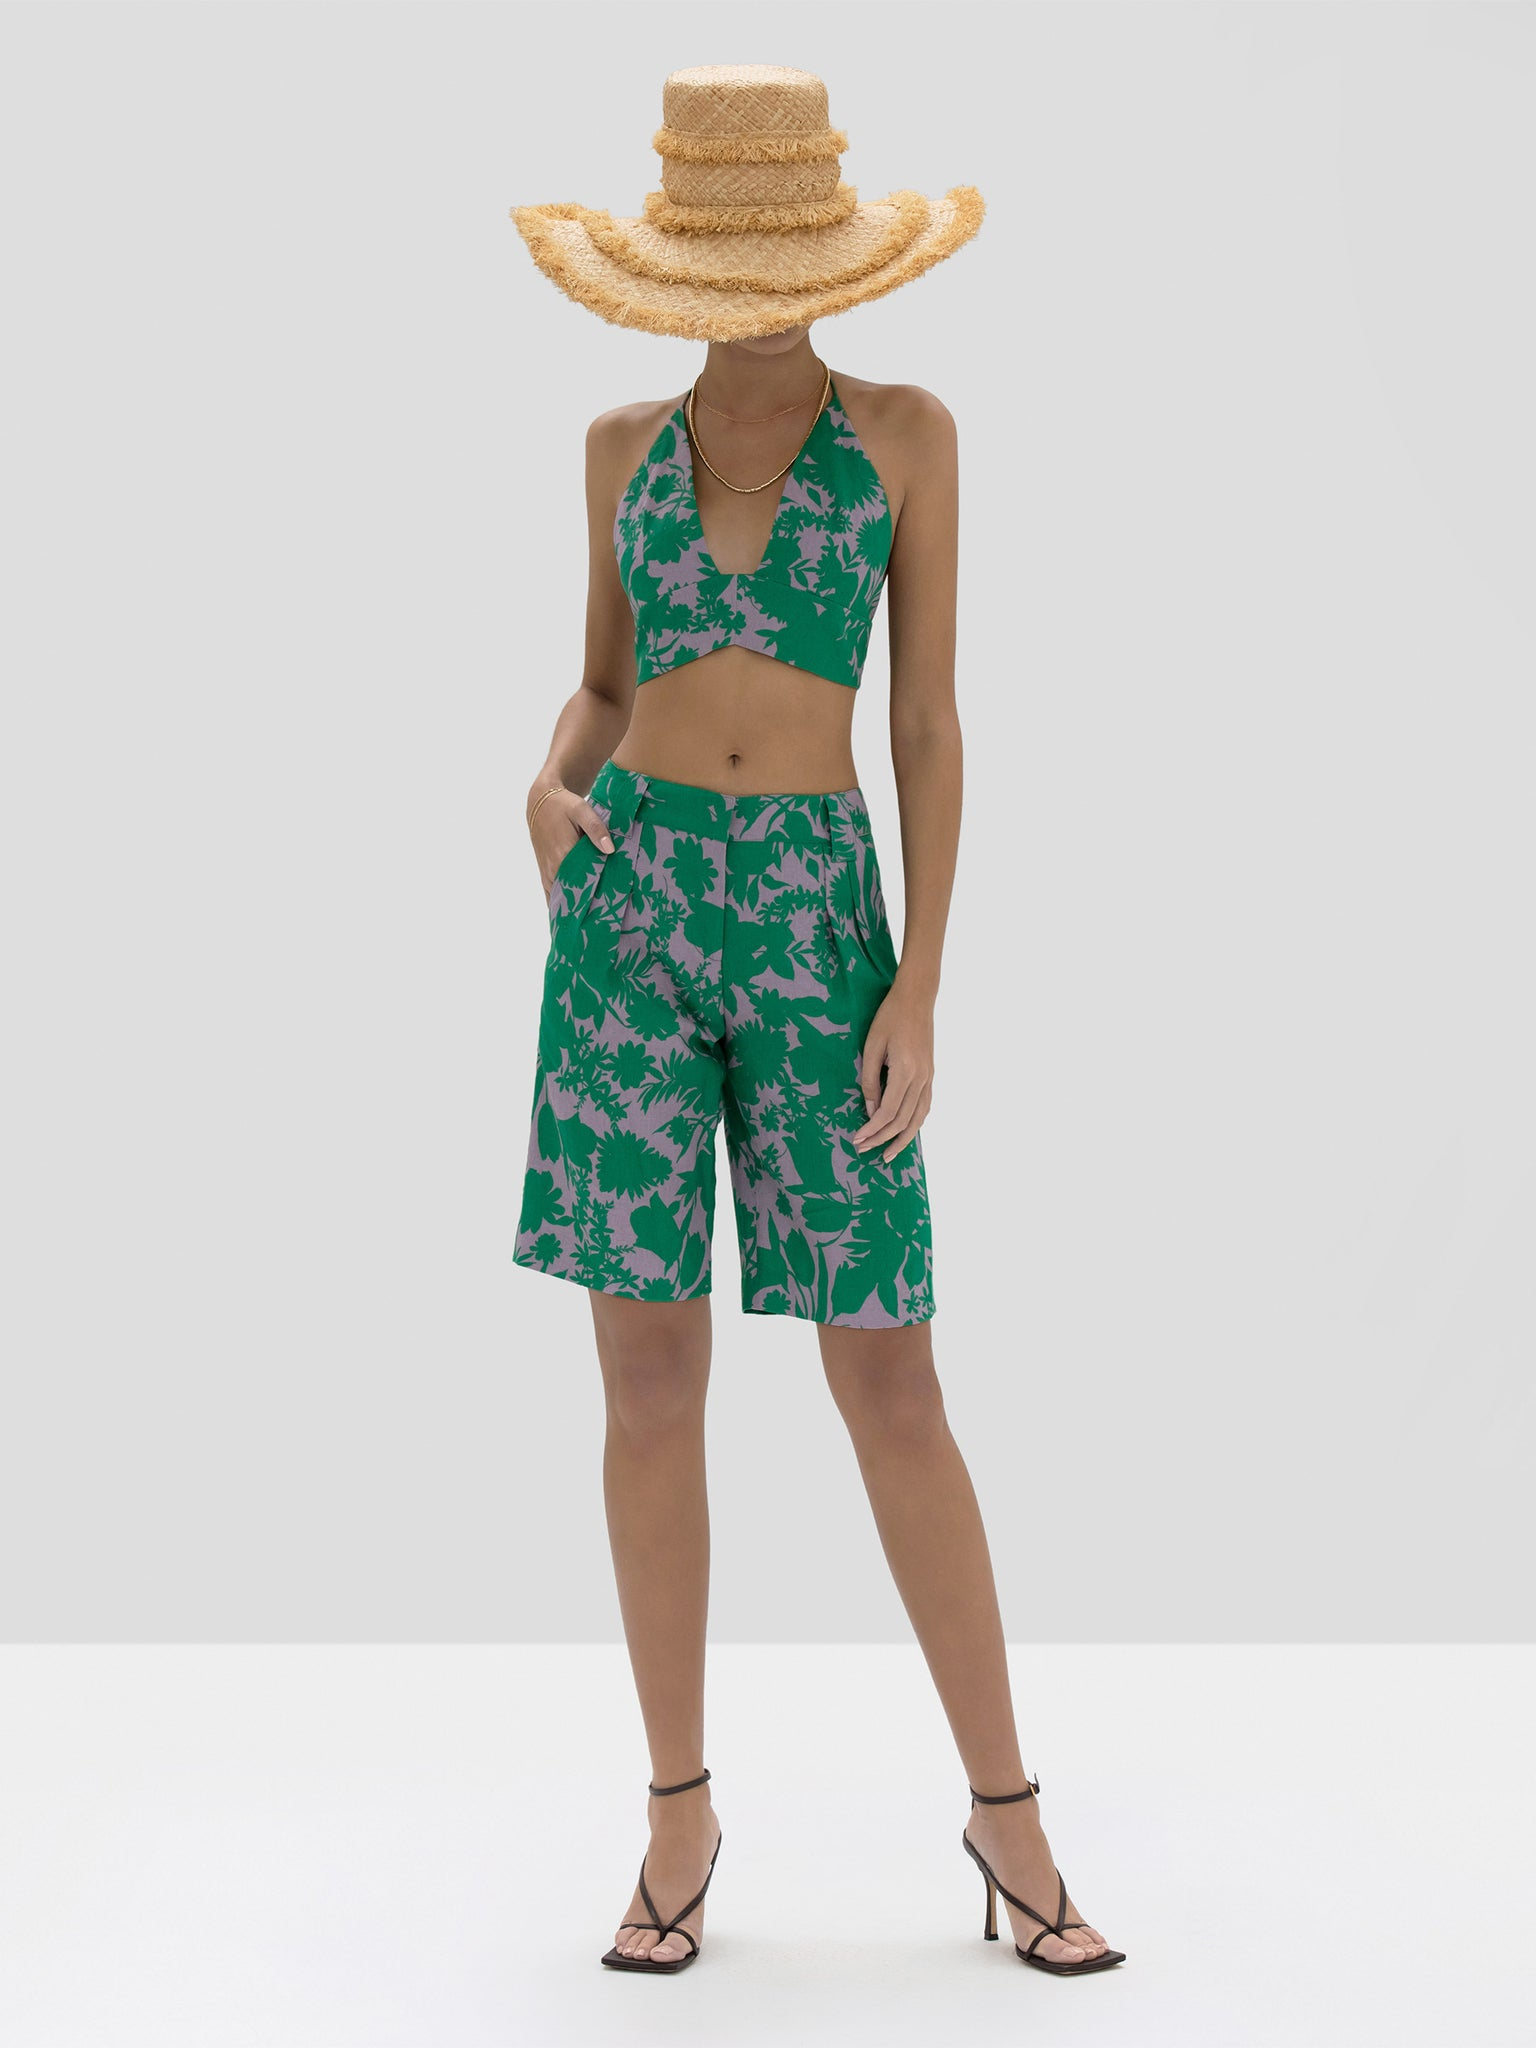 The Gaila Top in Emerald Botanical from the Spring Summer 2020